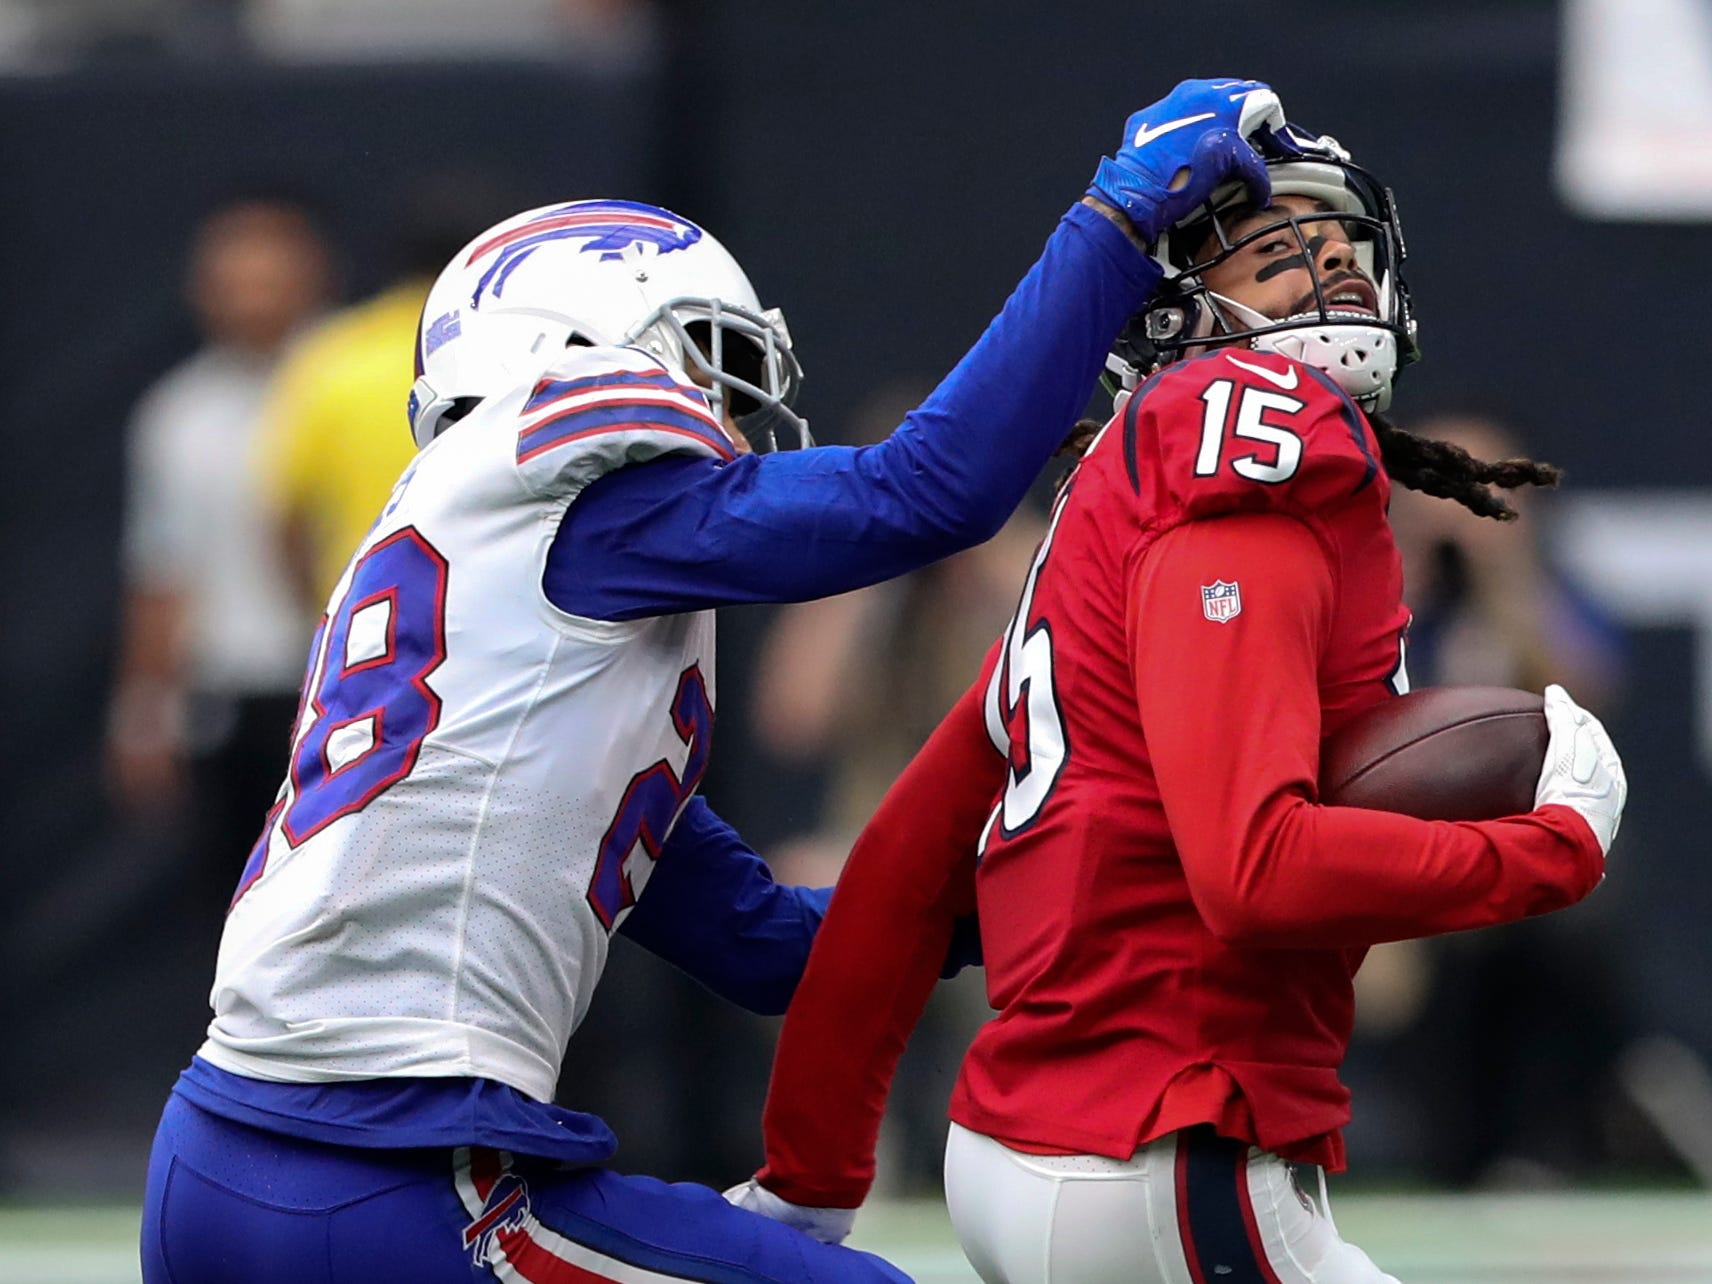 Oct 14, 2018; Houston, TX, USA; Buffalo Bills defensive back Phillip Gaines (28) tackles Houston Texans wide receiver Will Fuller (15) during the second half at NRG Stadium. Mandatory Credit: Kevin Jairaj-USA TODAY Sports